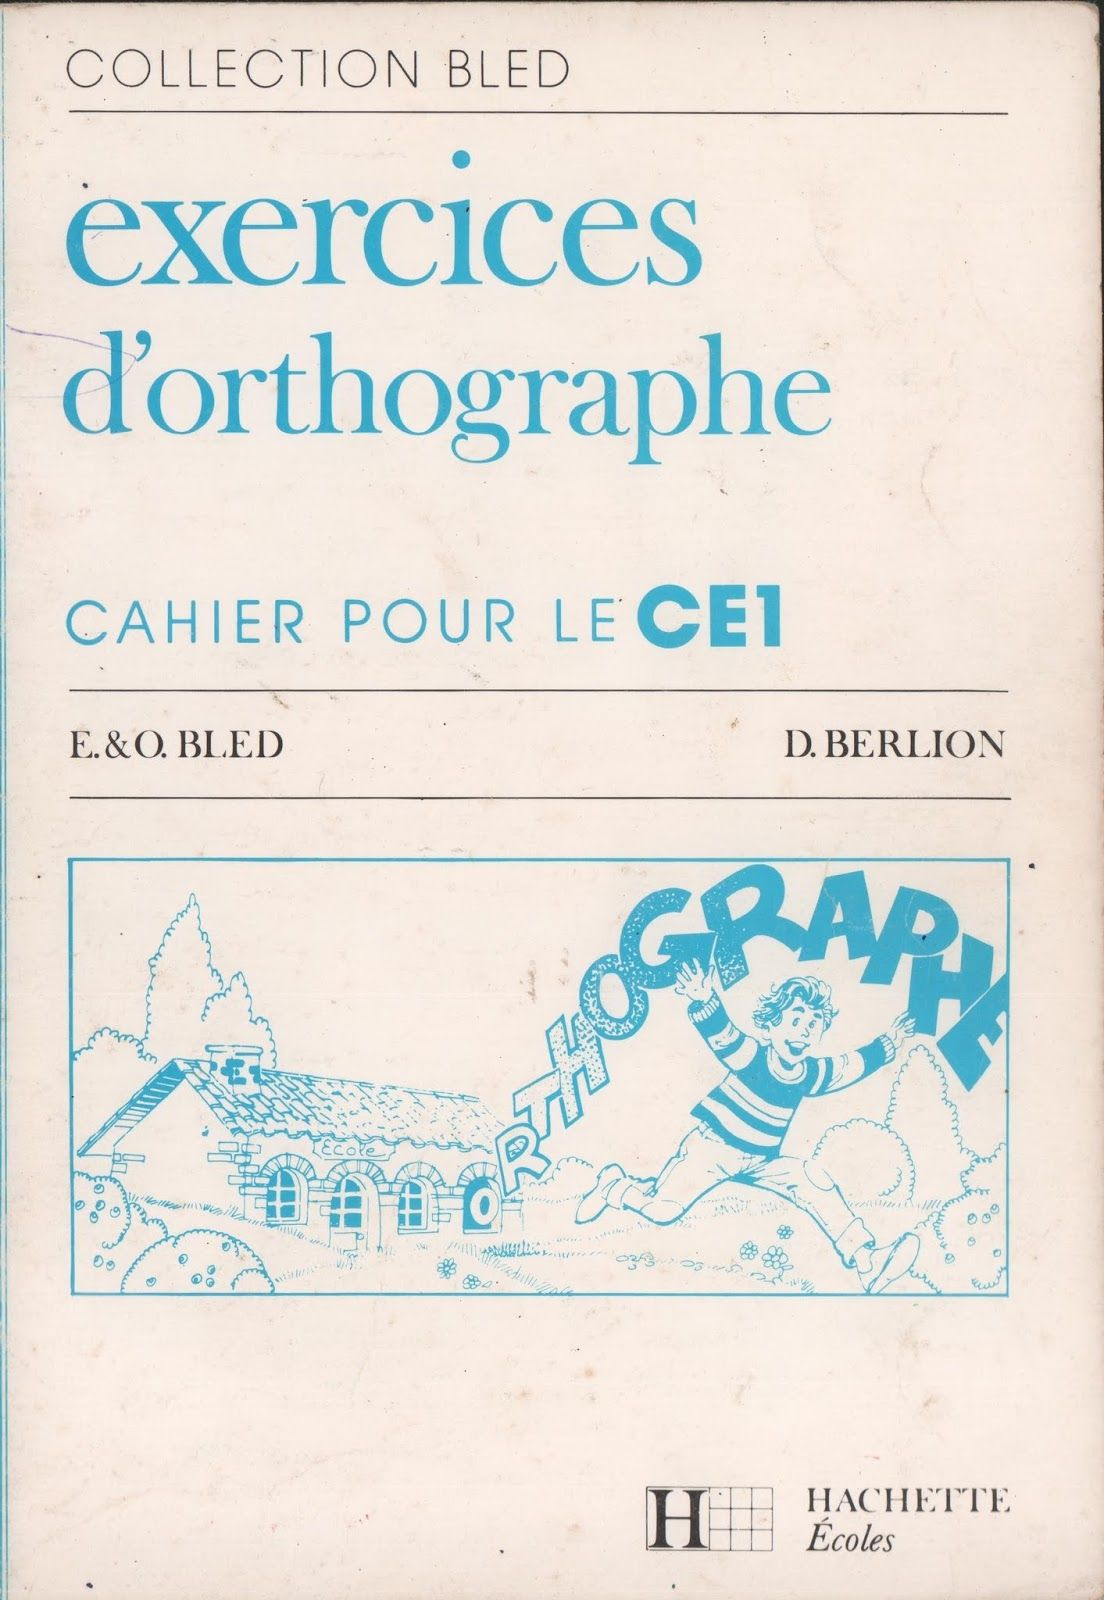 Bled Exercices D Orthographe Ce1 1990 Orthographe Ce1